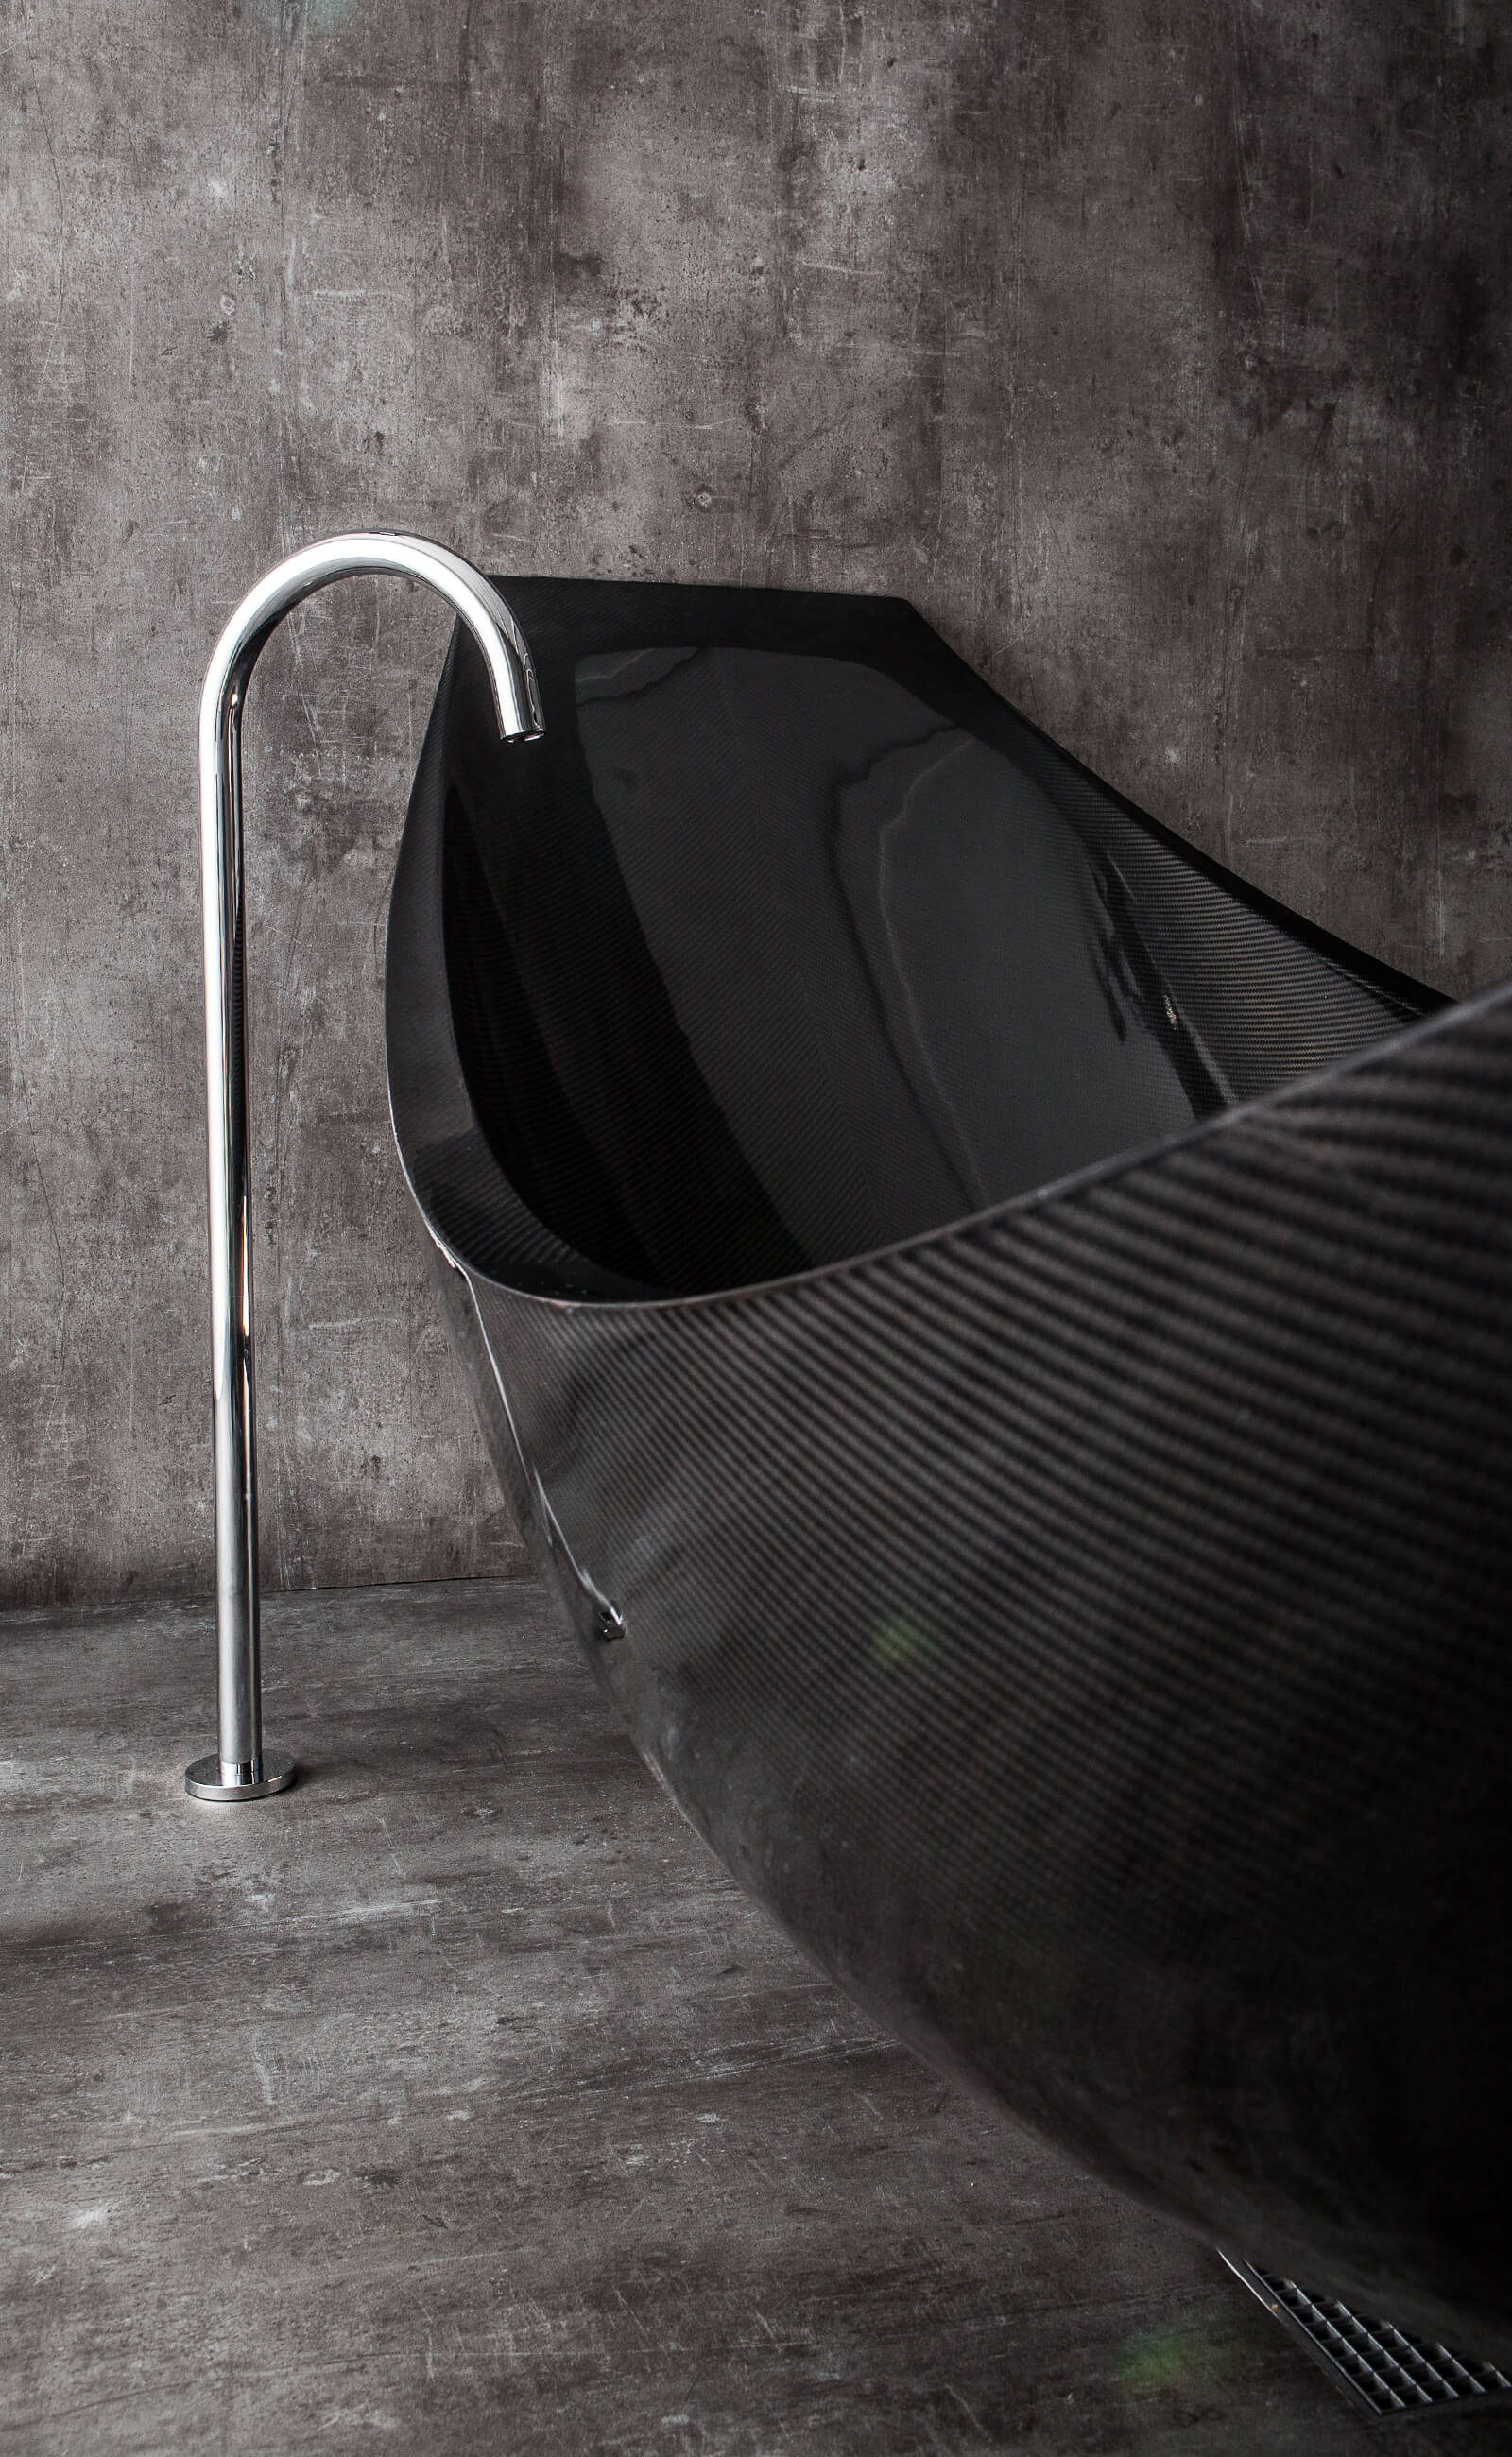 Detail of floor standing bath tap next to black suspended bath in polished concrete wet room